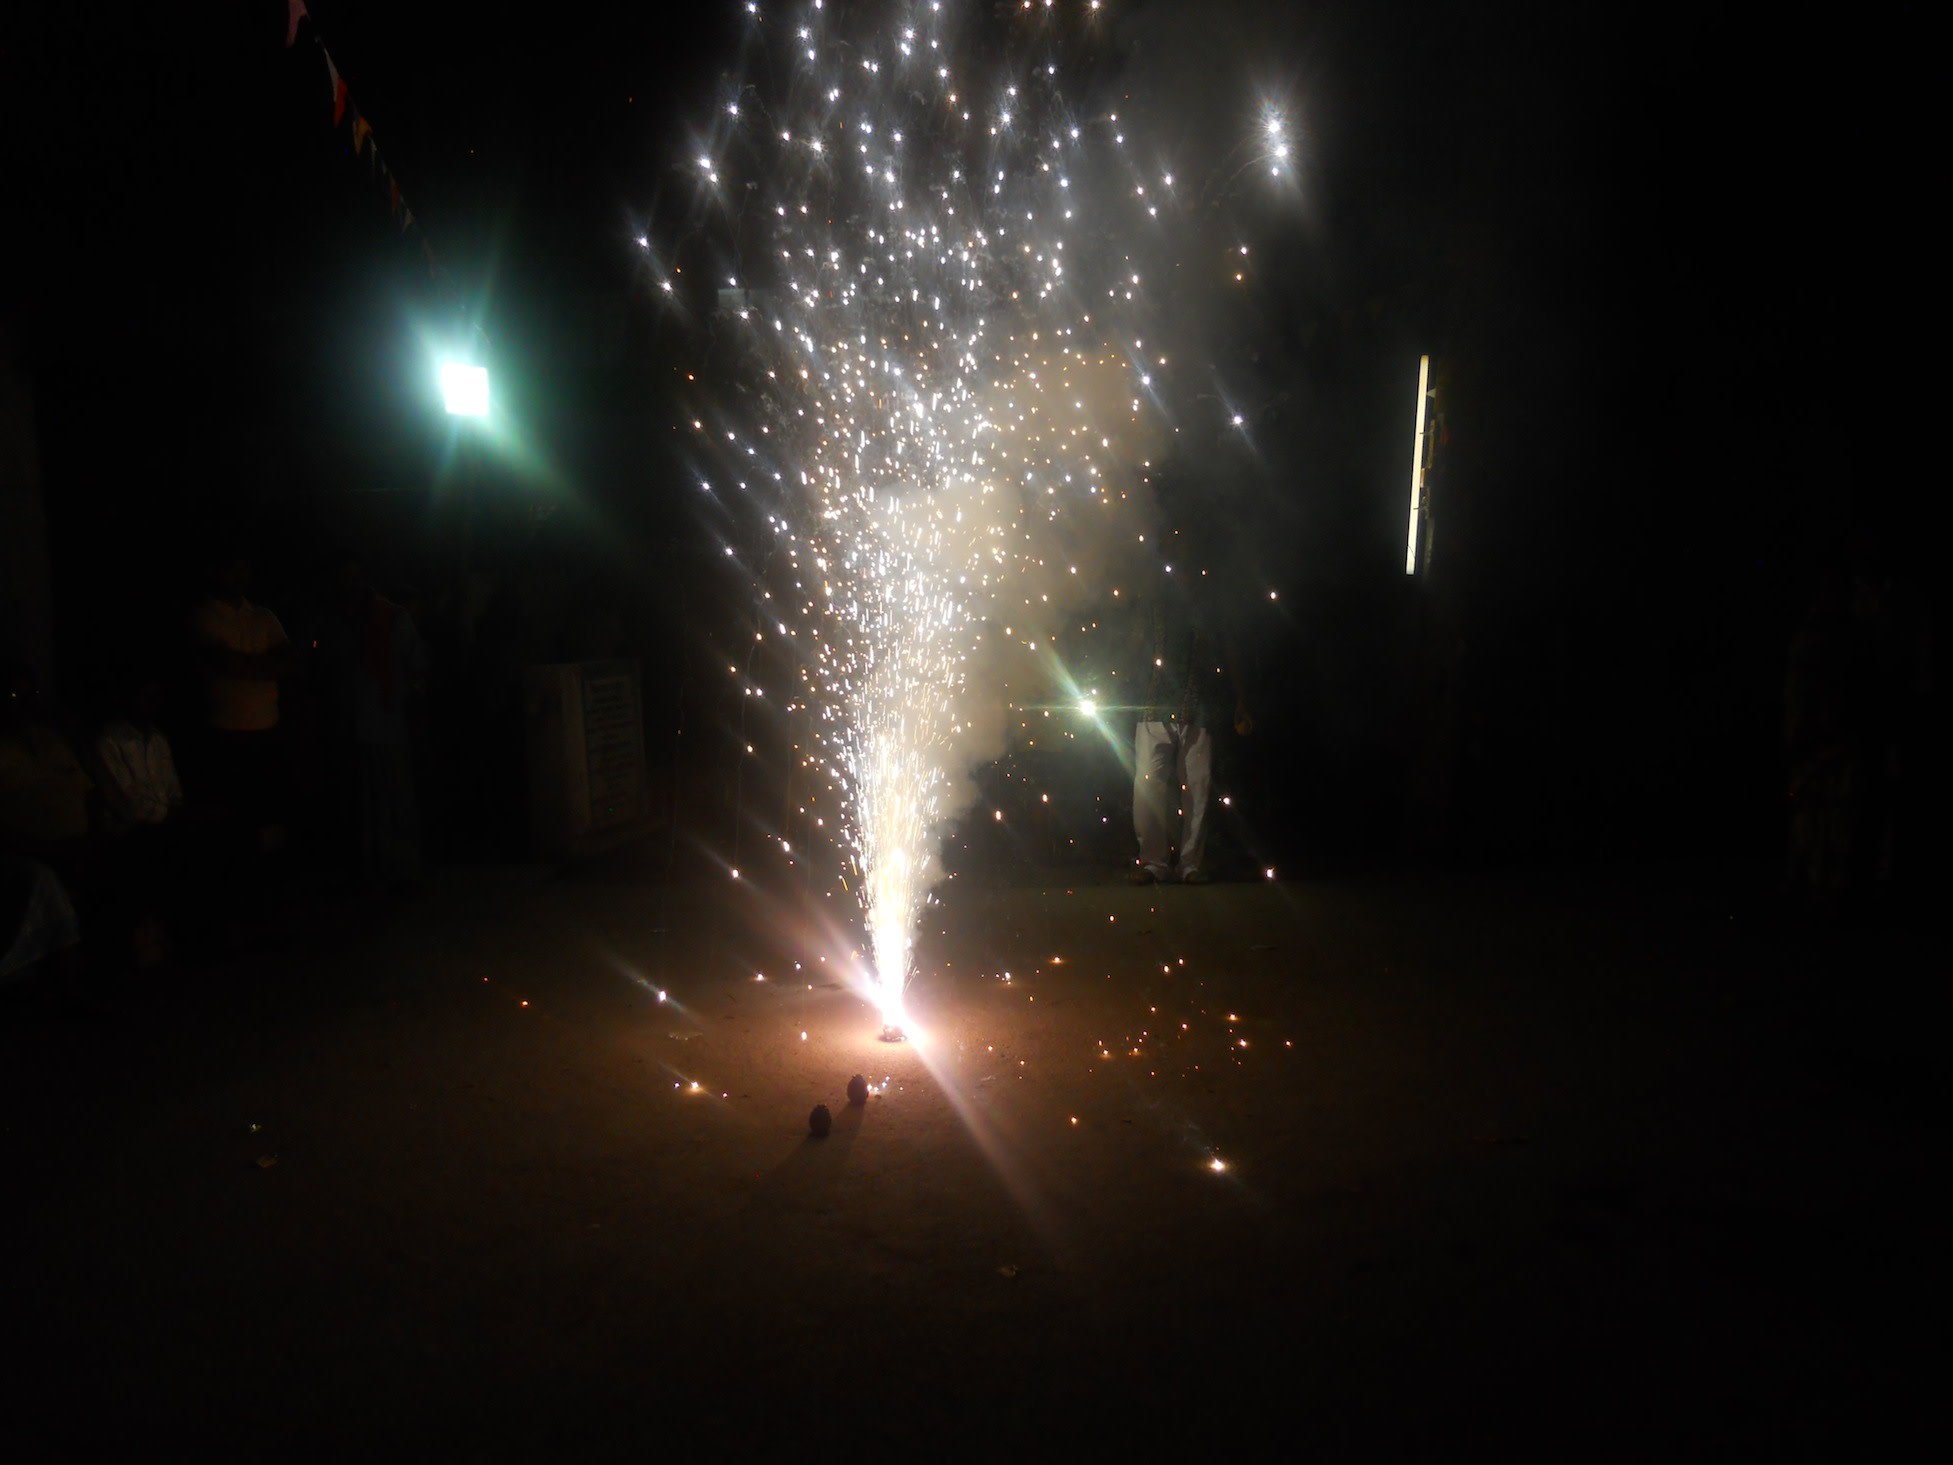 The puja concluded with the mesmerising sparkling of fireworks lighting up the night of an otherwise dark Ullon.